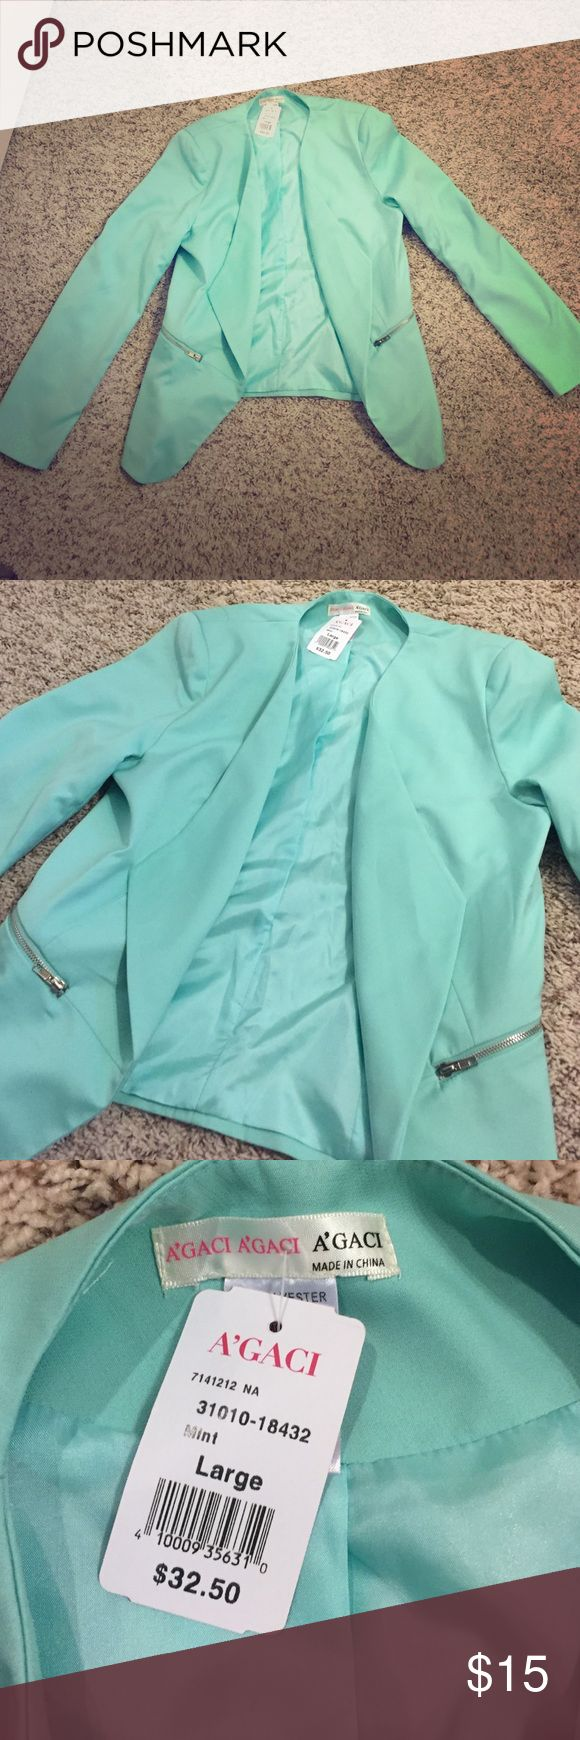 Turquoise Blazer A'Gaci Turquoise blazer with silver zippers. Brand new with tags! Size Large! a'gaci Jackets & Coats Blazers